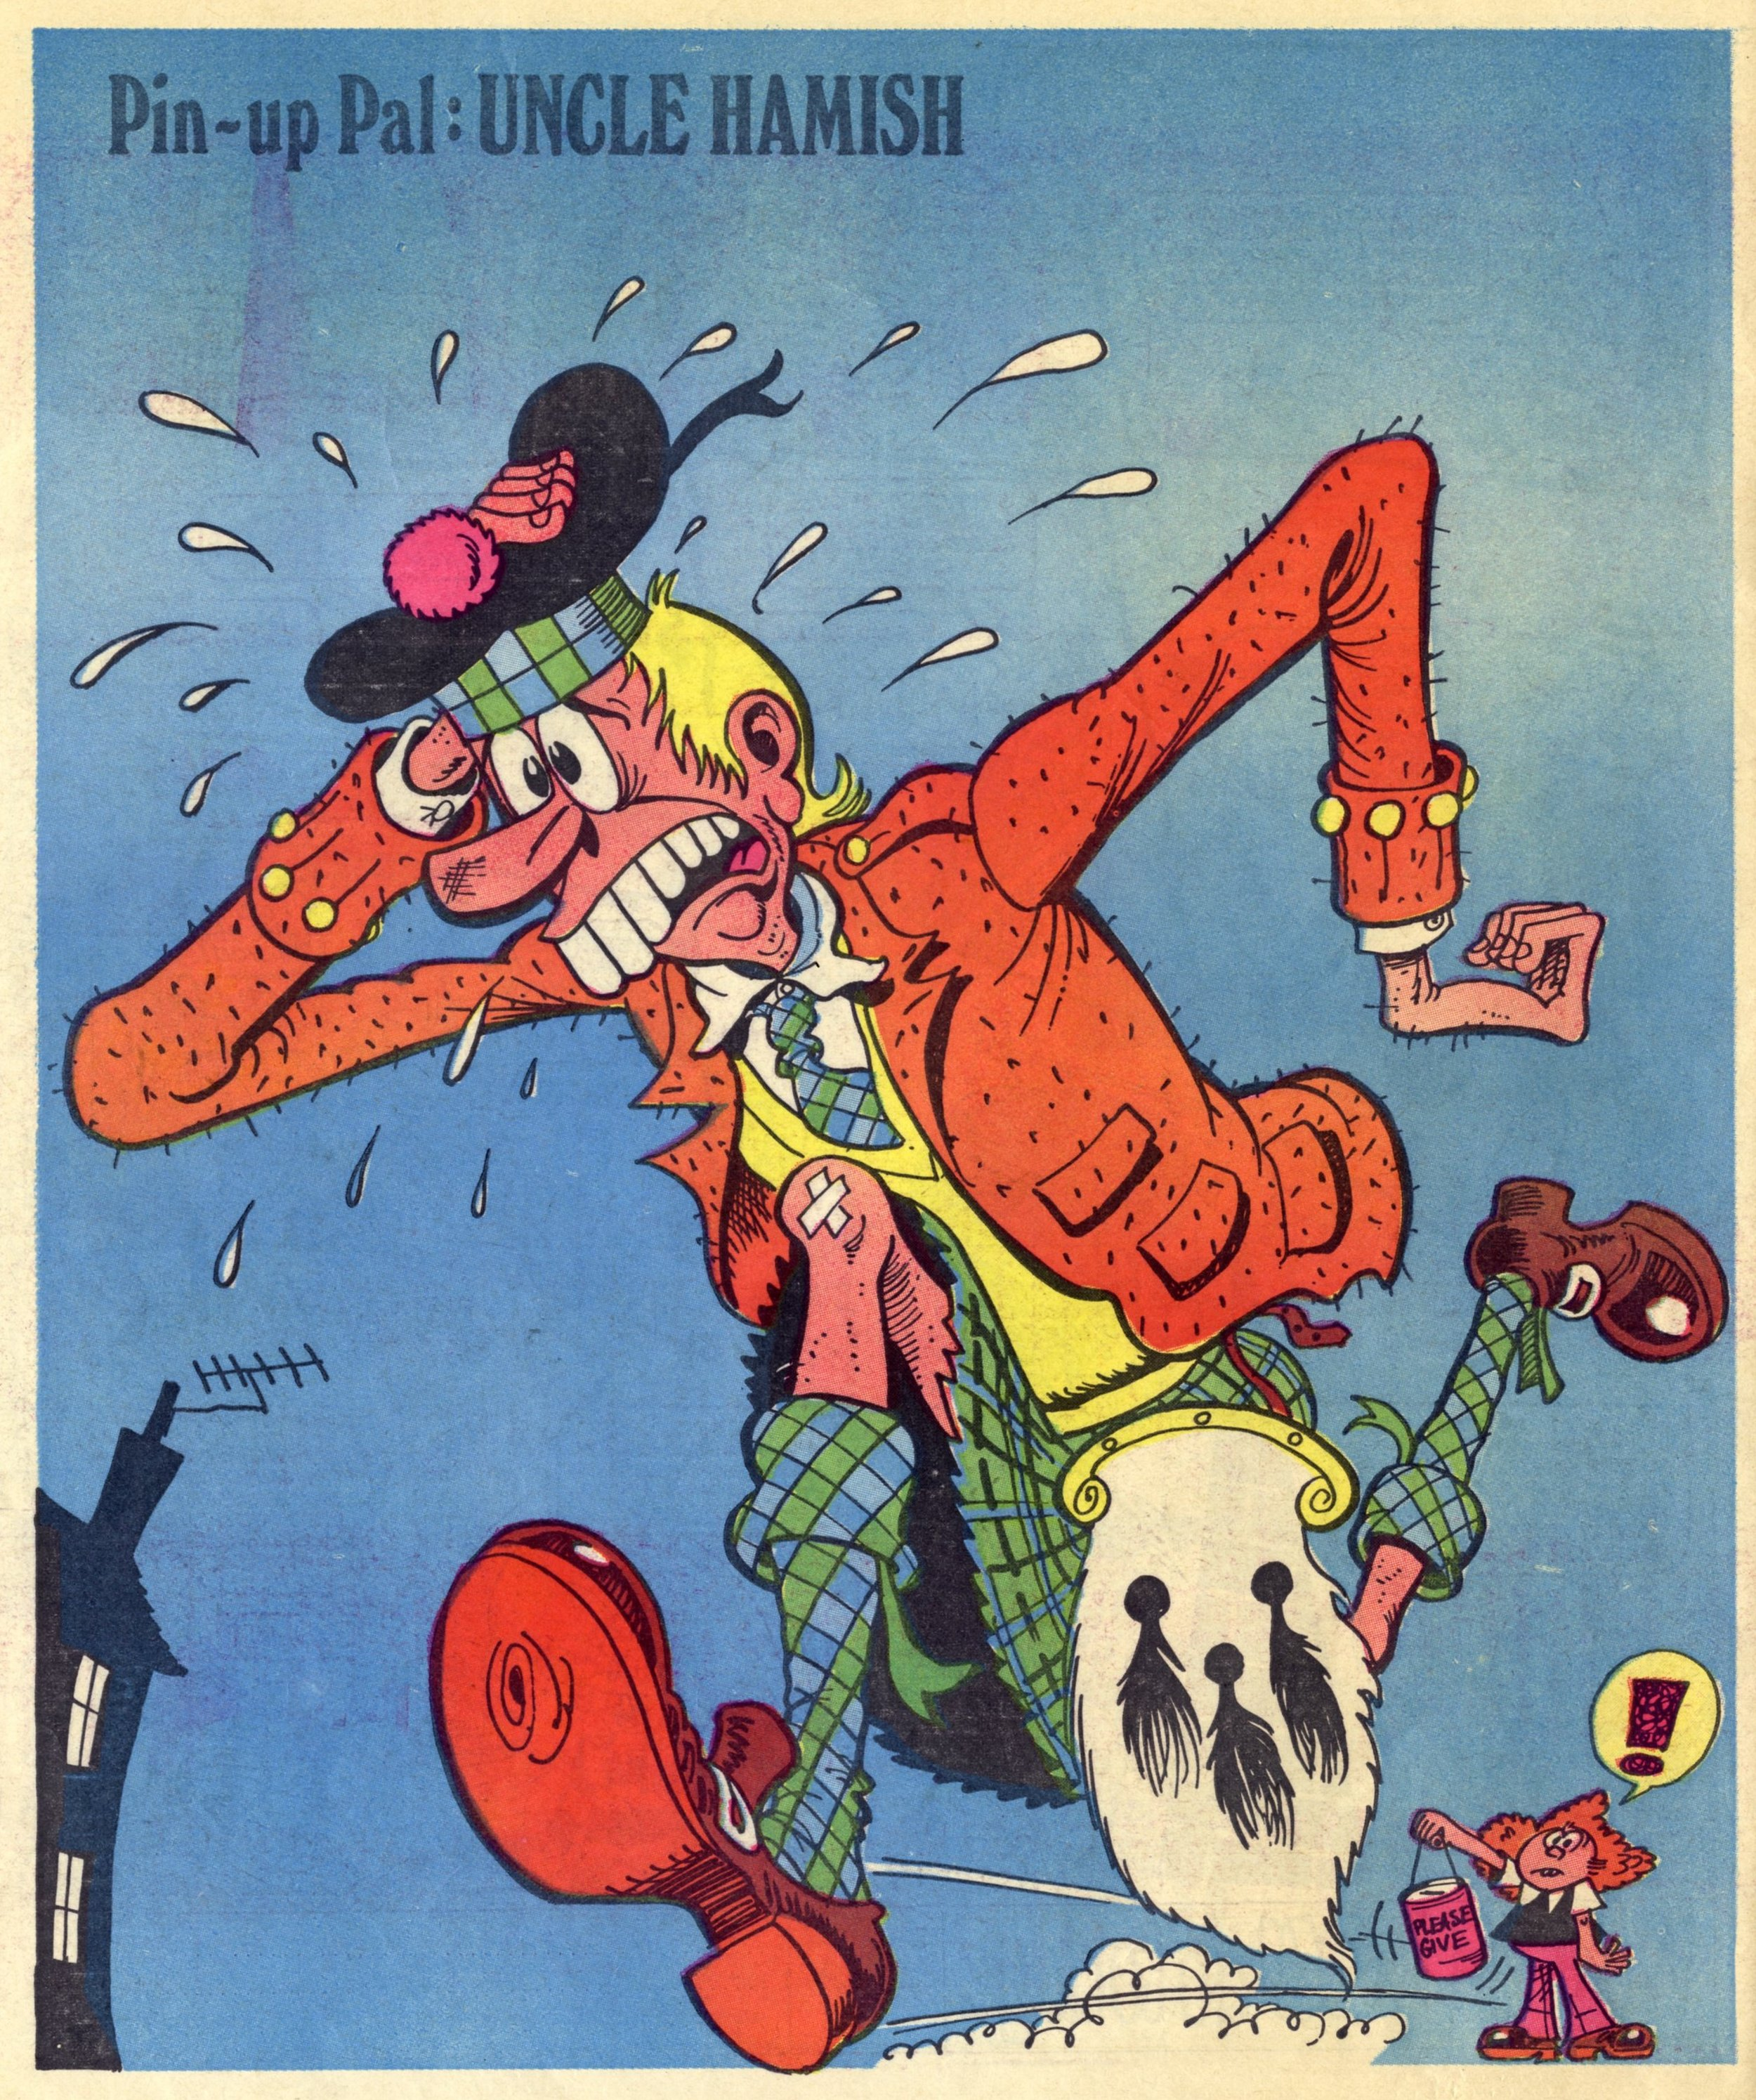 Pin-up Pal: Uncle Hamish (artist Frank McDiarmid), 24 March 1979